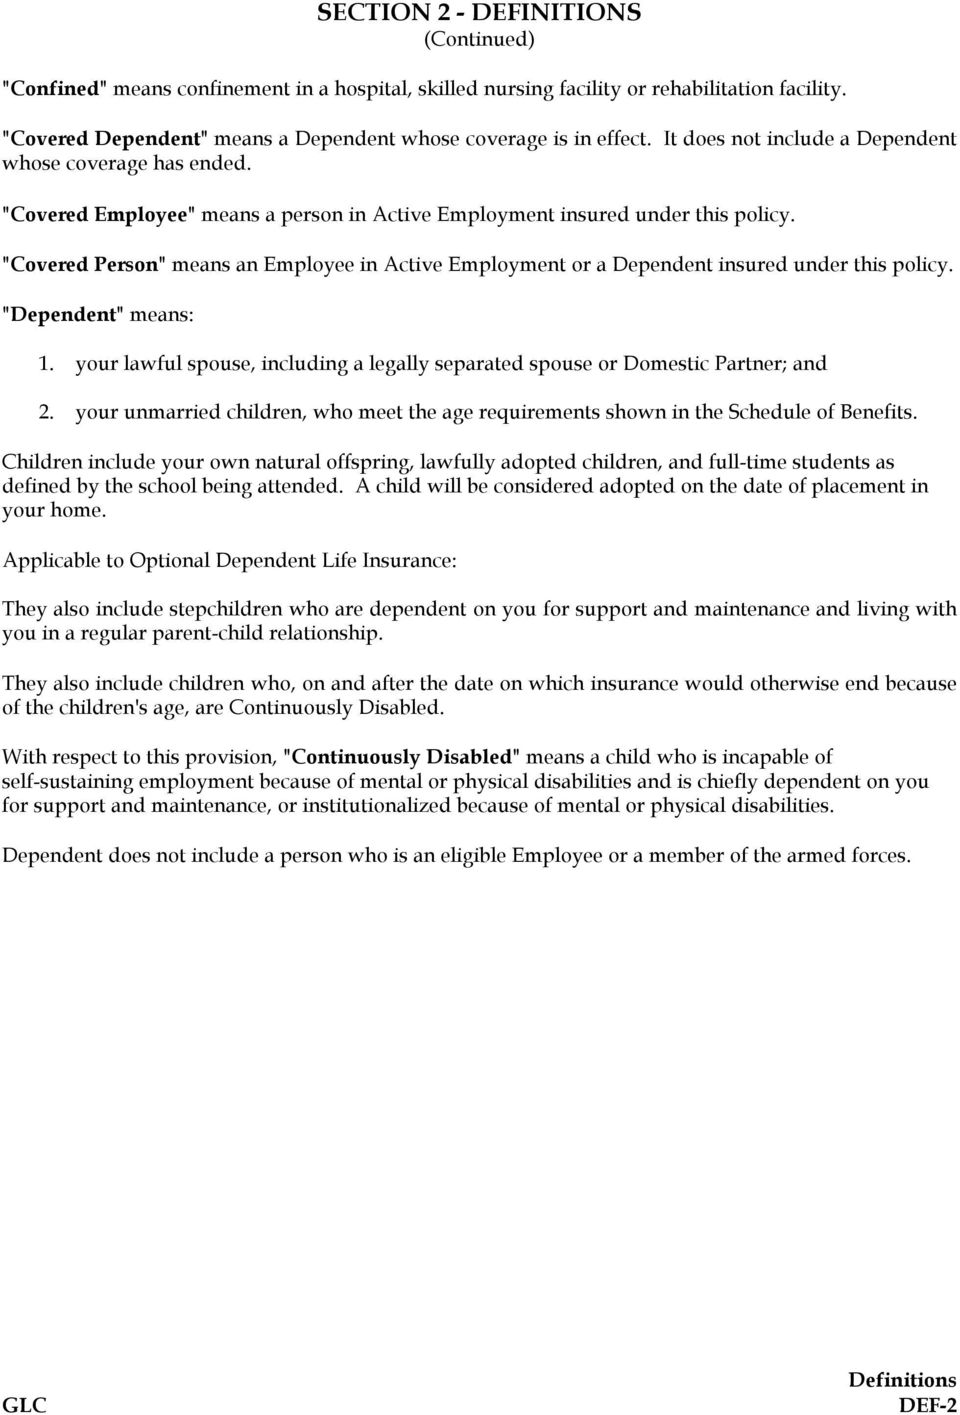 """Covered Person"" means an Employee in Active Employment or a Dependent insured under this policy. ""Dependent"" means: 1."